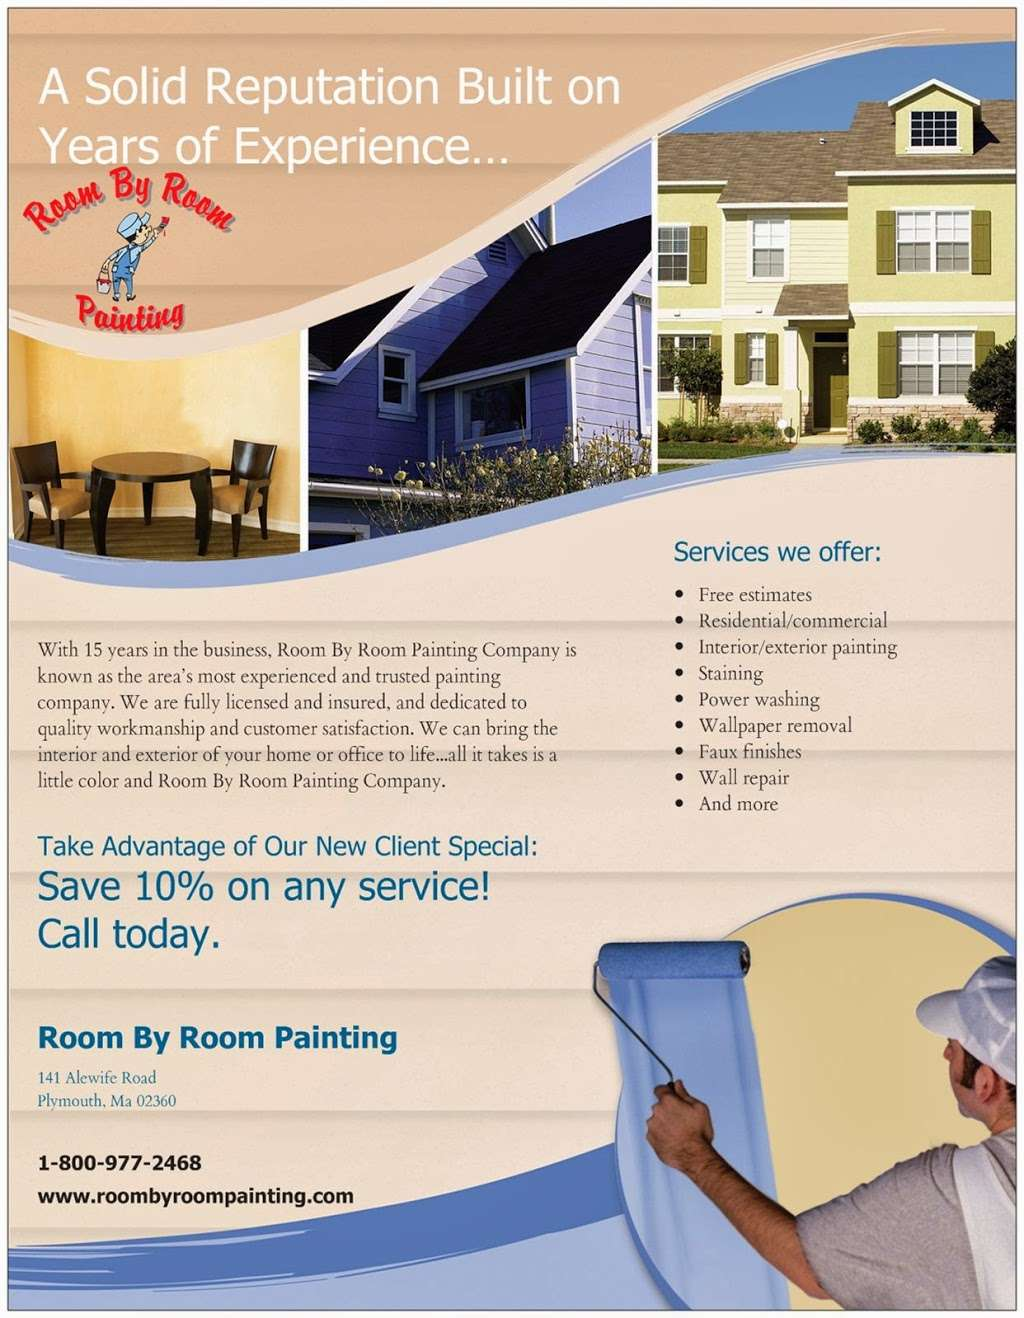 Room By Room Painting - painter  | Photo 2 of 4 | Address: 141 Alewife Rd, Plymouth, MA 02360, USA | Phone: (508) 889-0229